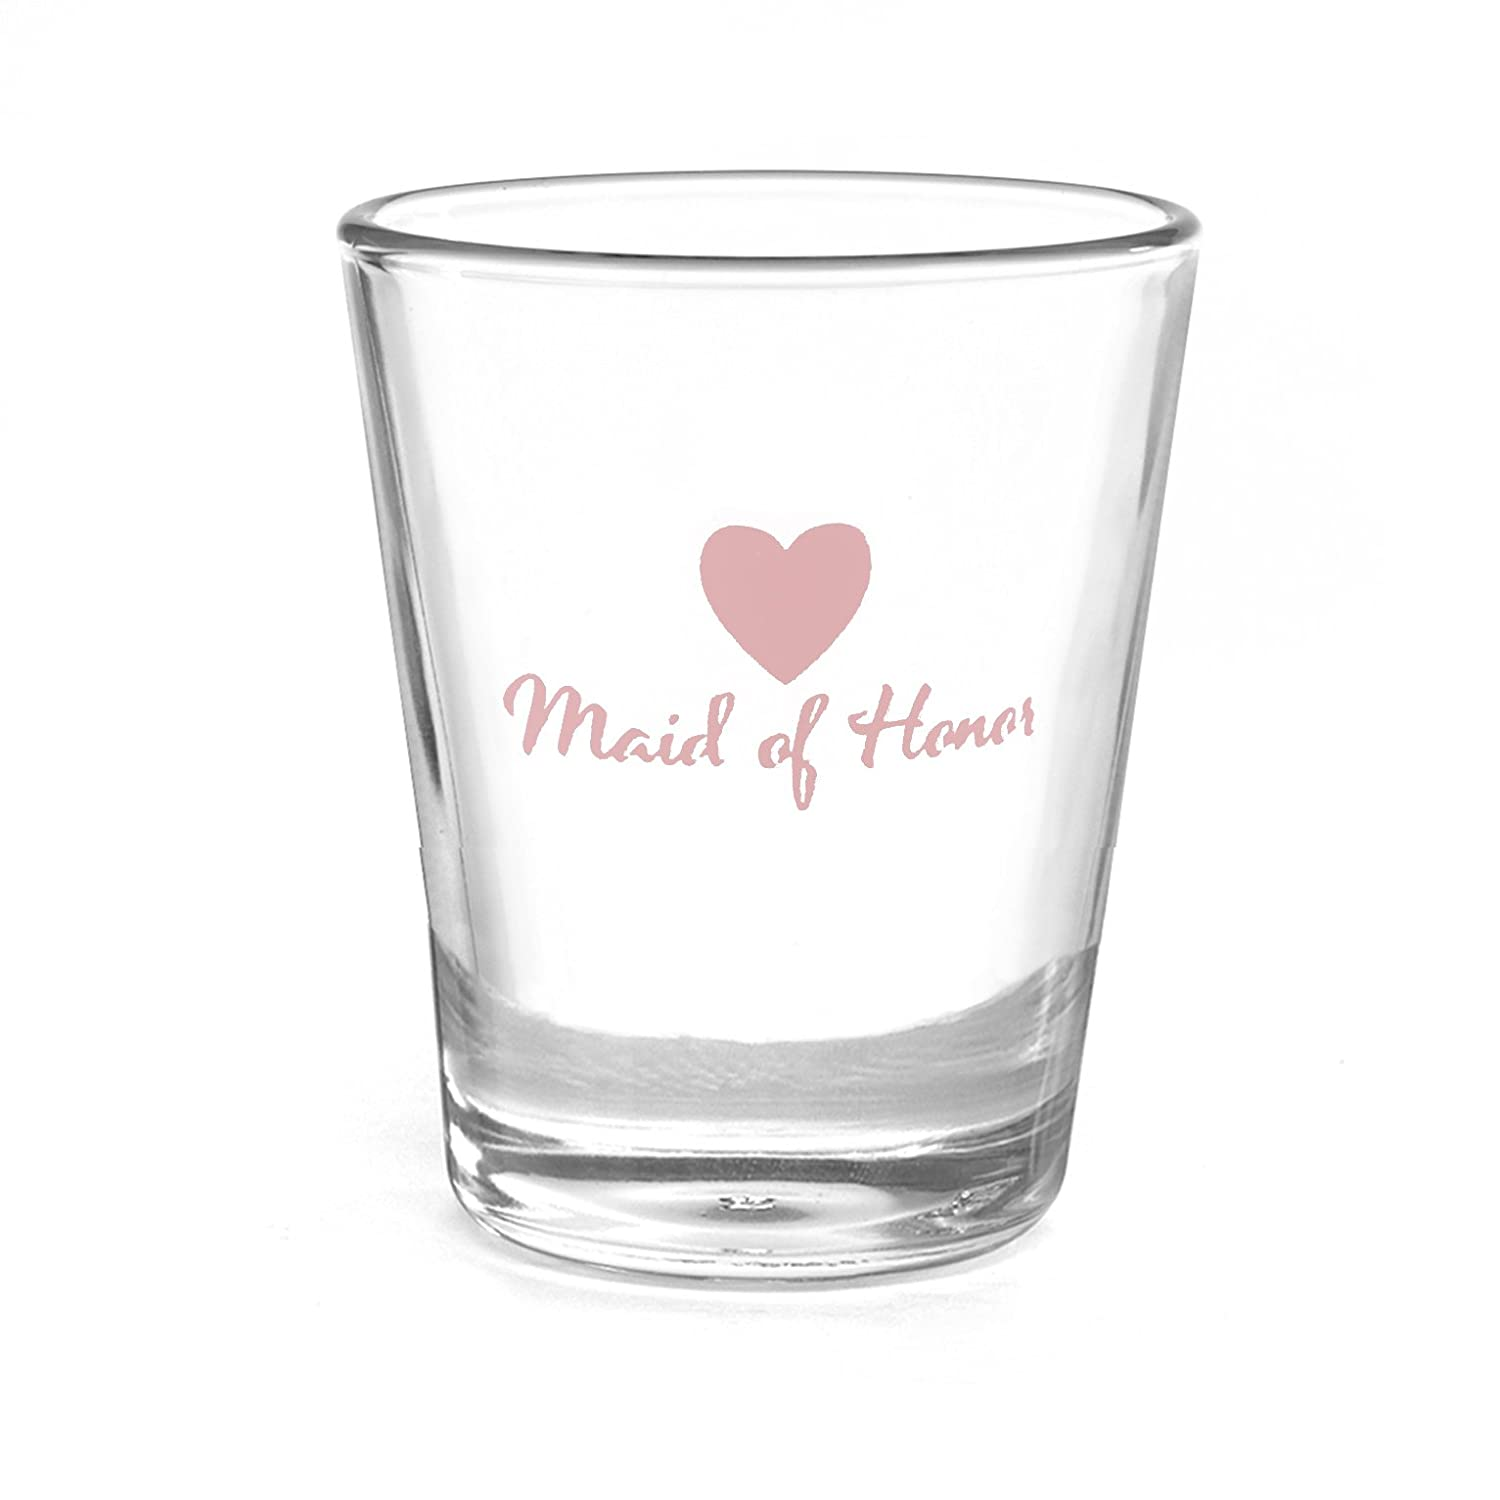 Hortense B. Hewitt Bow Tie Wedding Party Best Man Shot Glass 38860